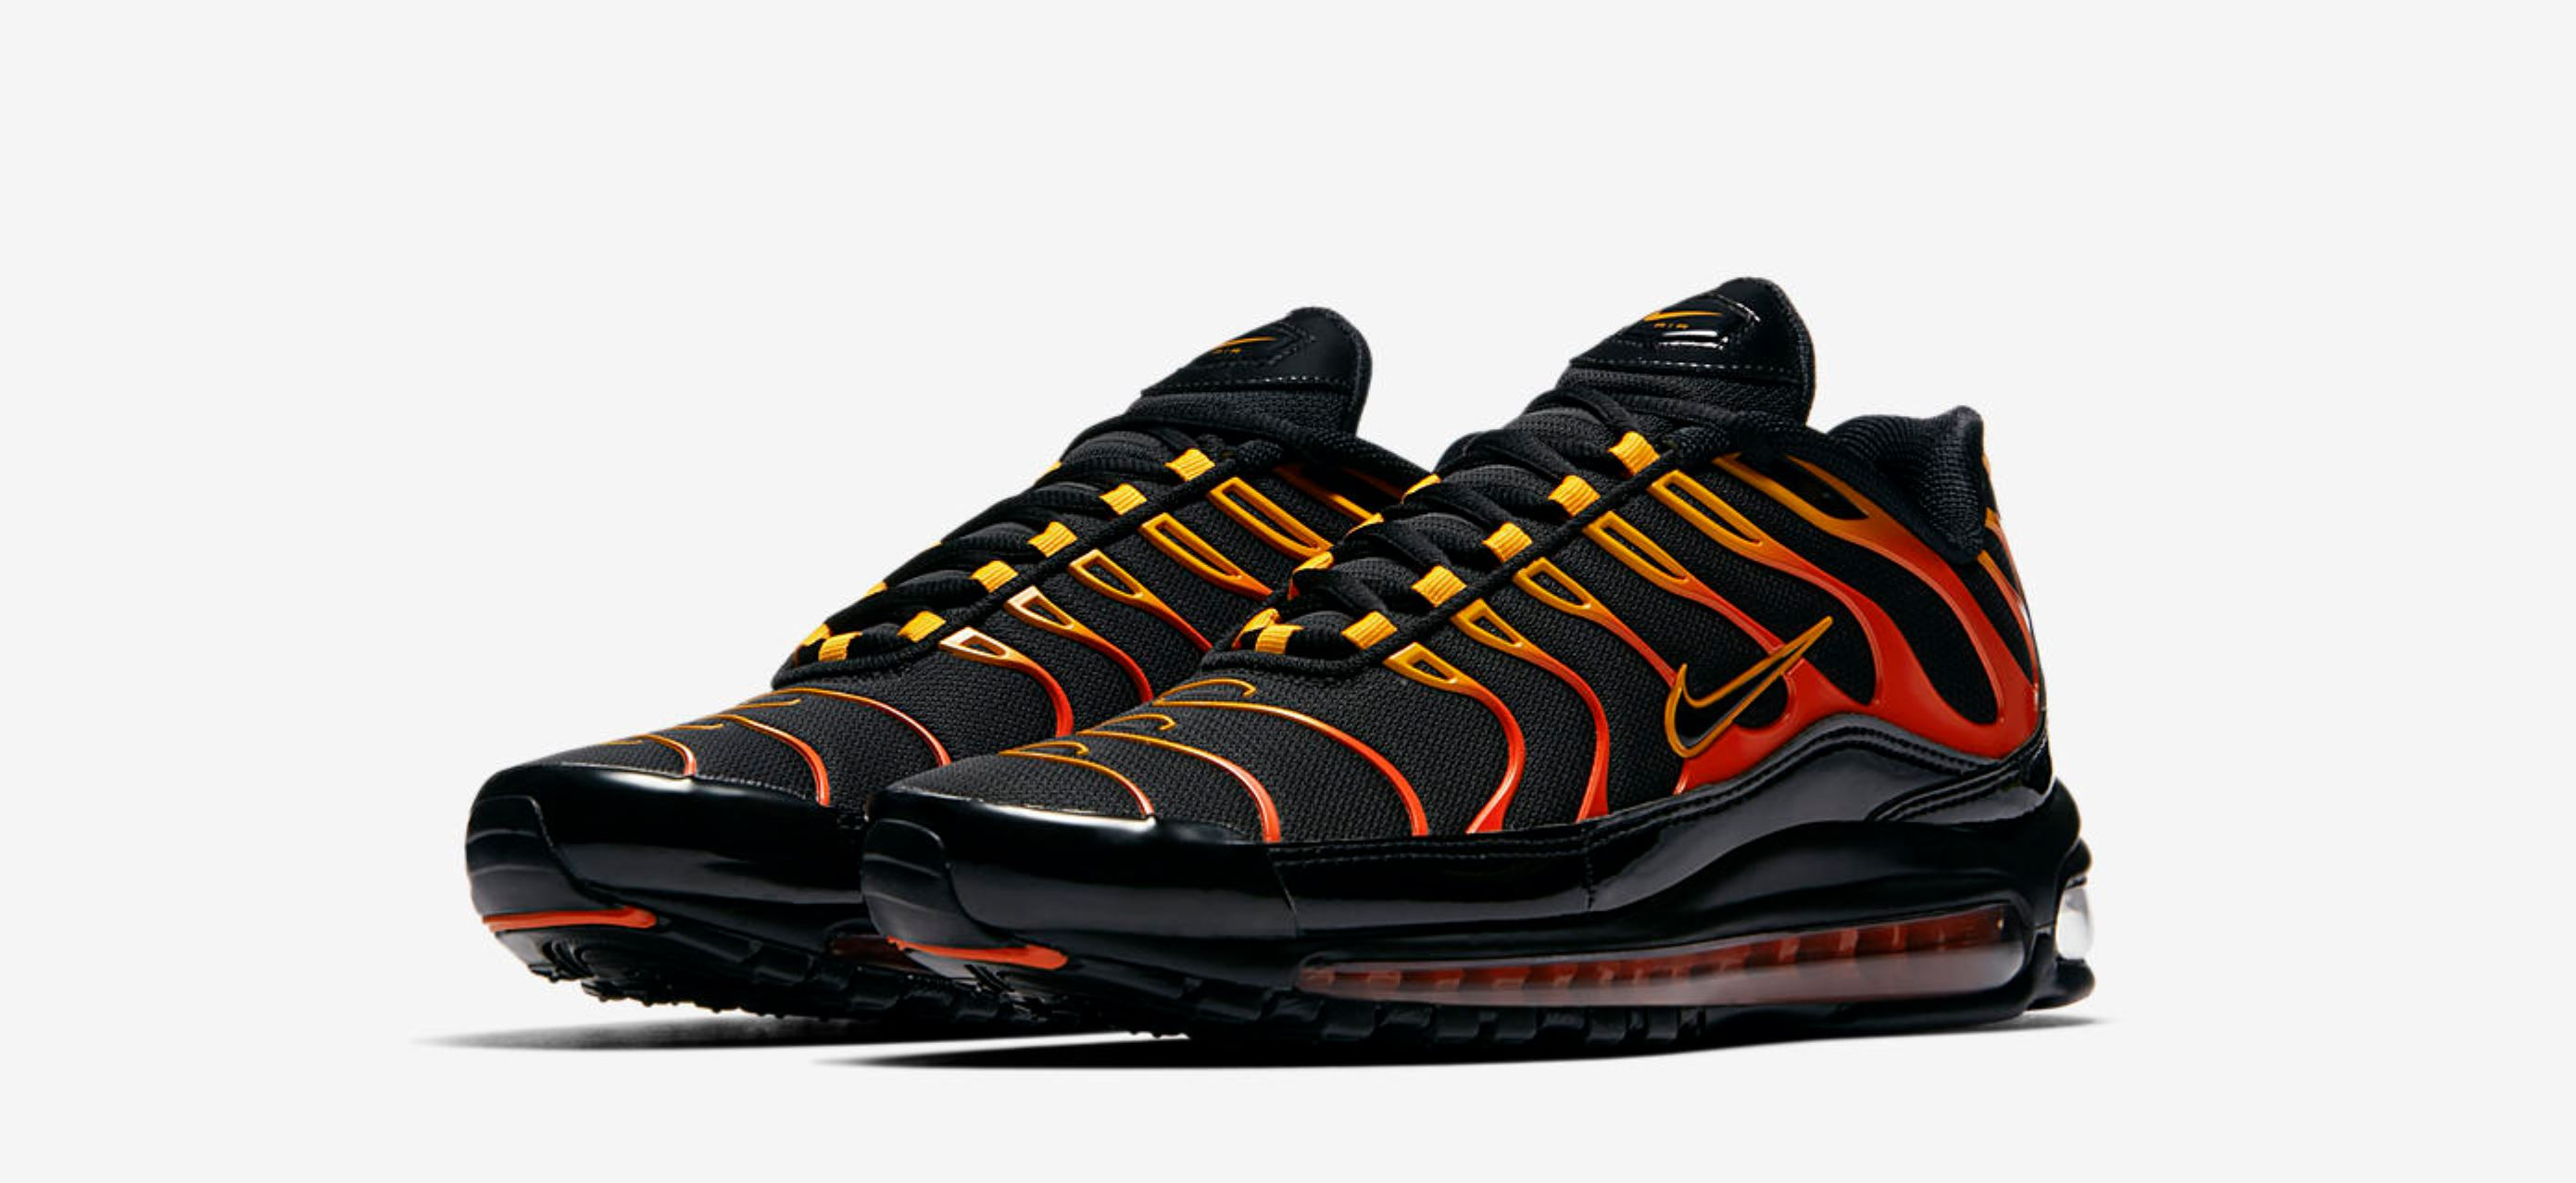 Sobretodo tema Aclarar  This Red Hot Nike Air Max 97 Plus Hybrid Arrives Friday - WearTesters